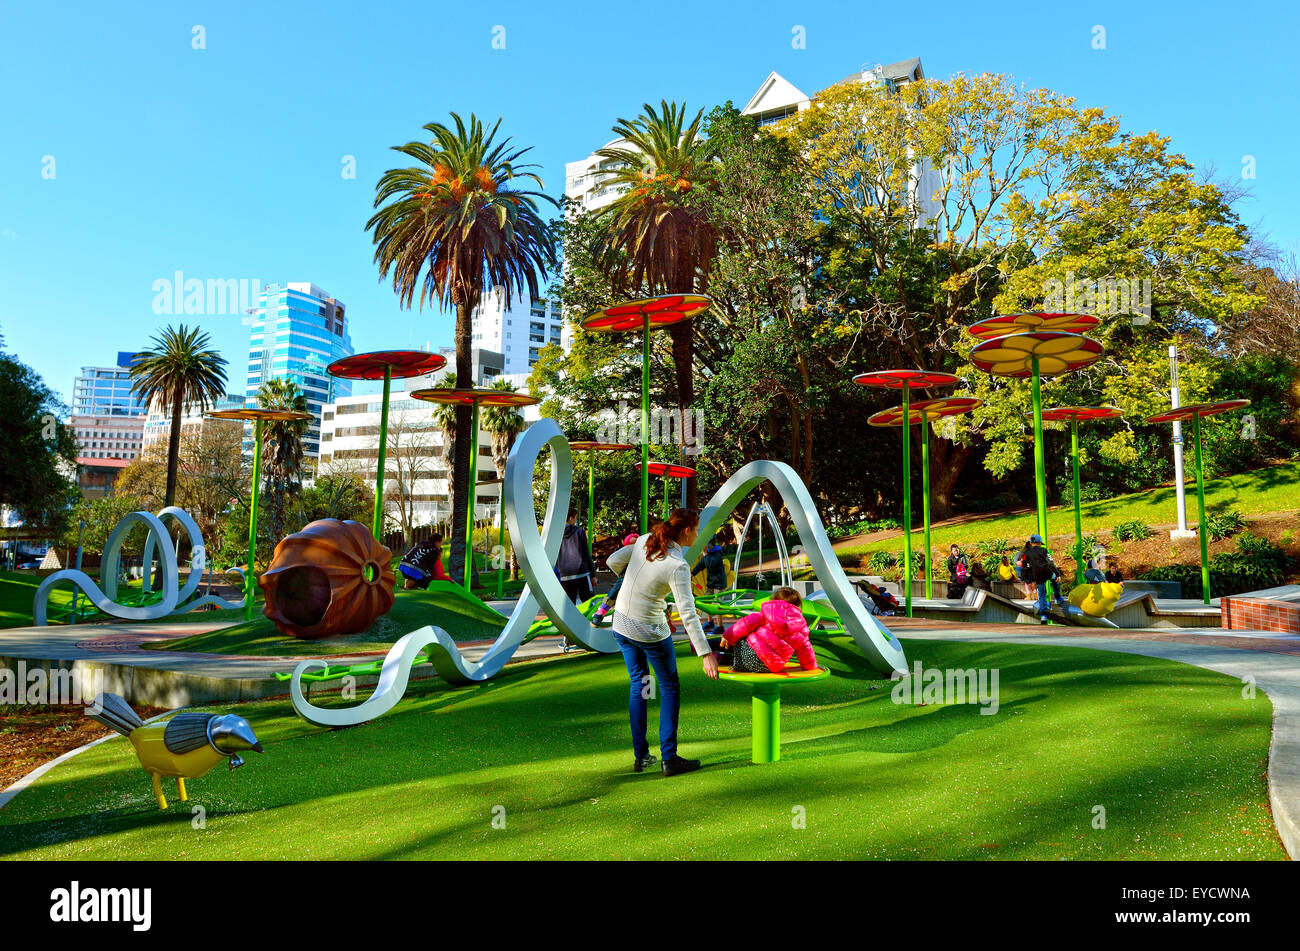 AUCKLAND - JULY 11 2015:Families enjoy Myers Park Playground.Myers Park developed in 1913 and for it's 100-year - Stock Image